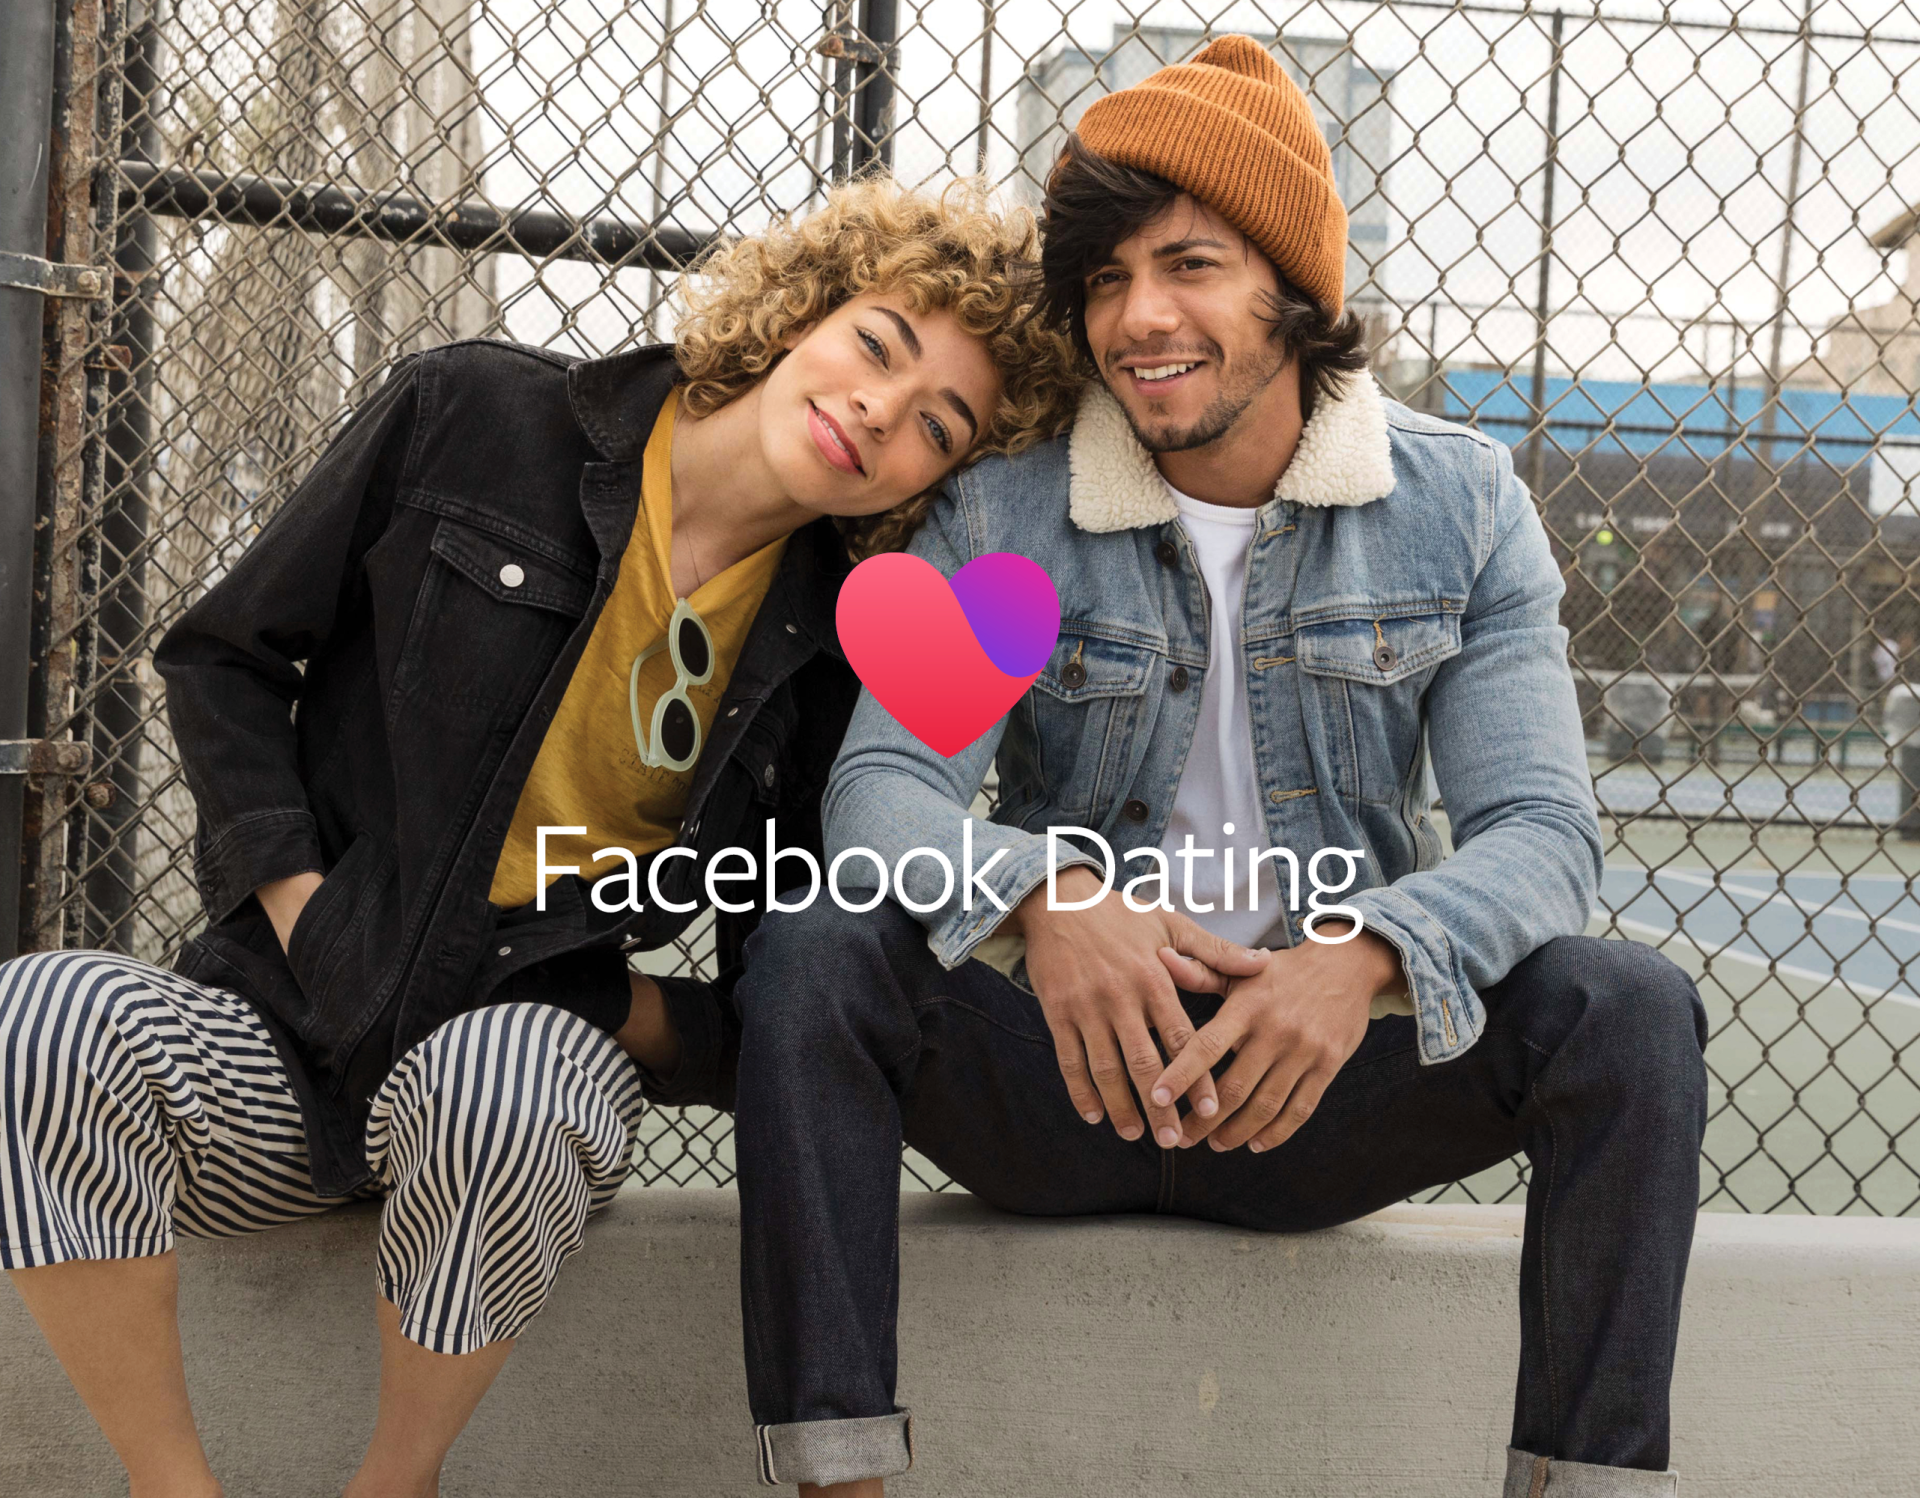 Facebook enters into the online dating world | KRON4